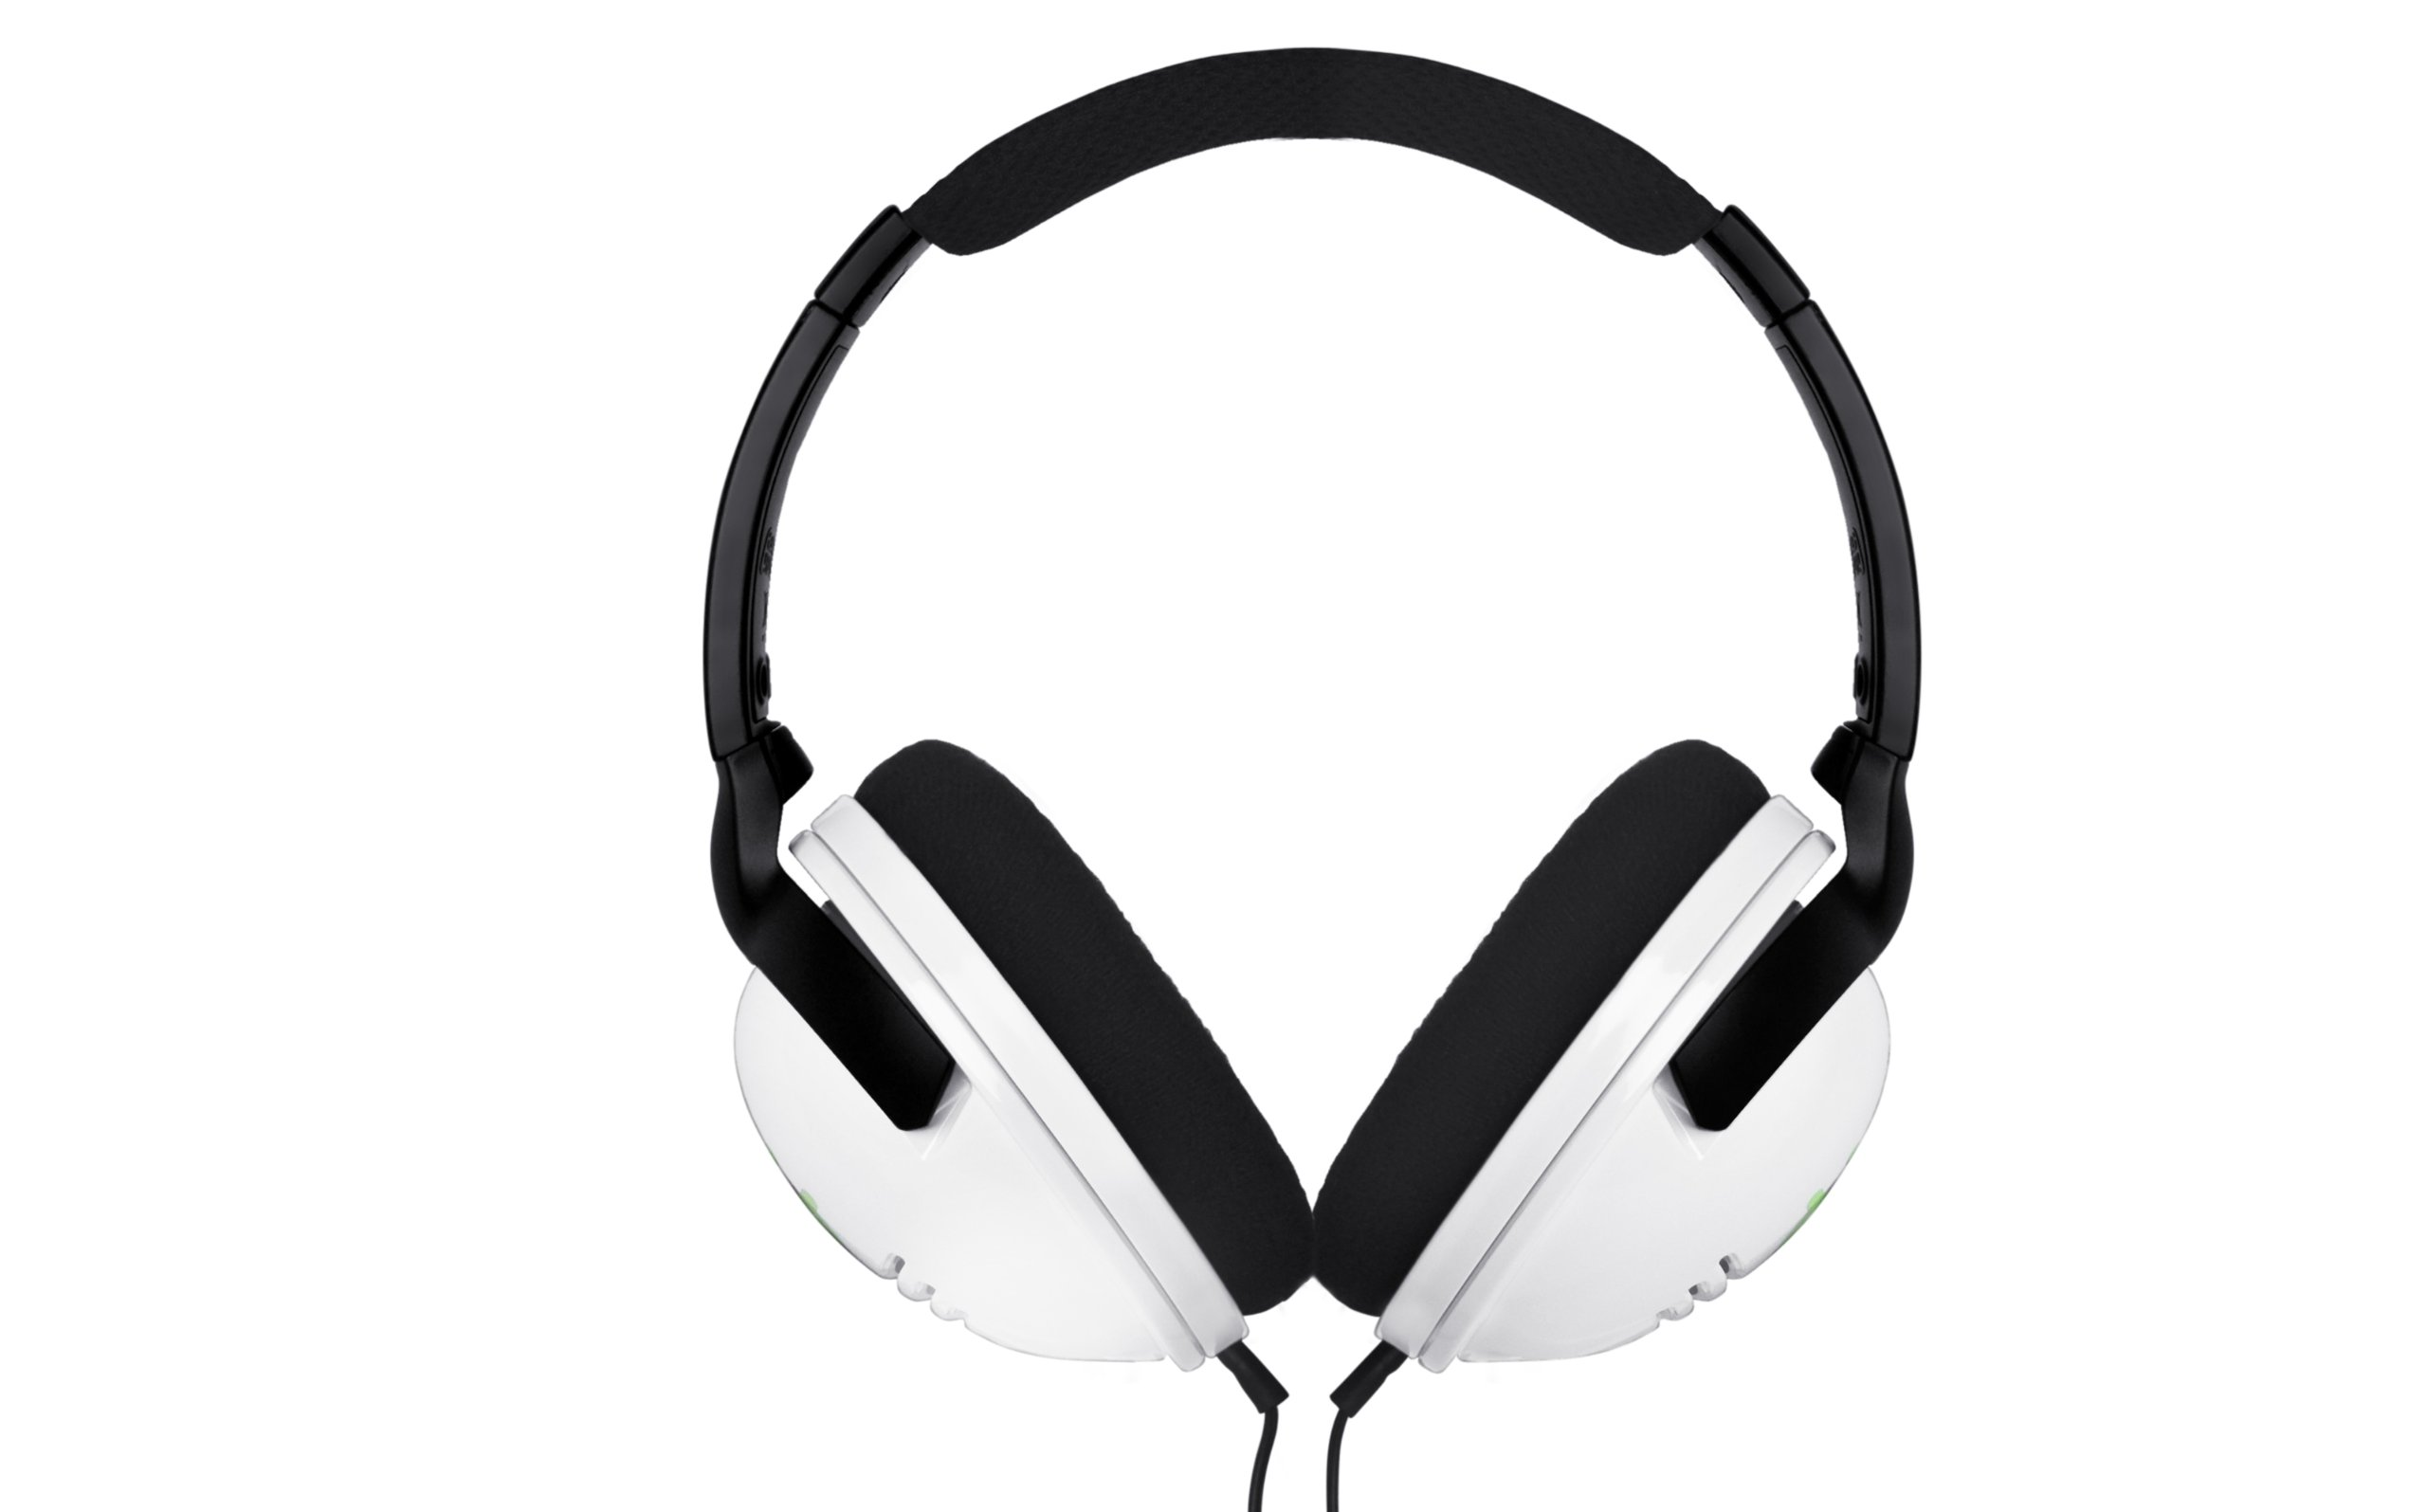 SteelSeries Spectrum 4xB Gaming Headset for Xbox 360 (White) by SteelSeries